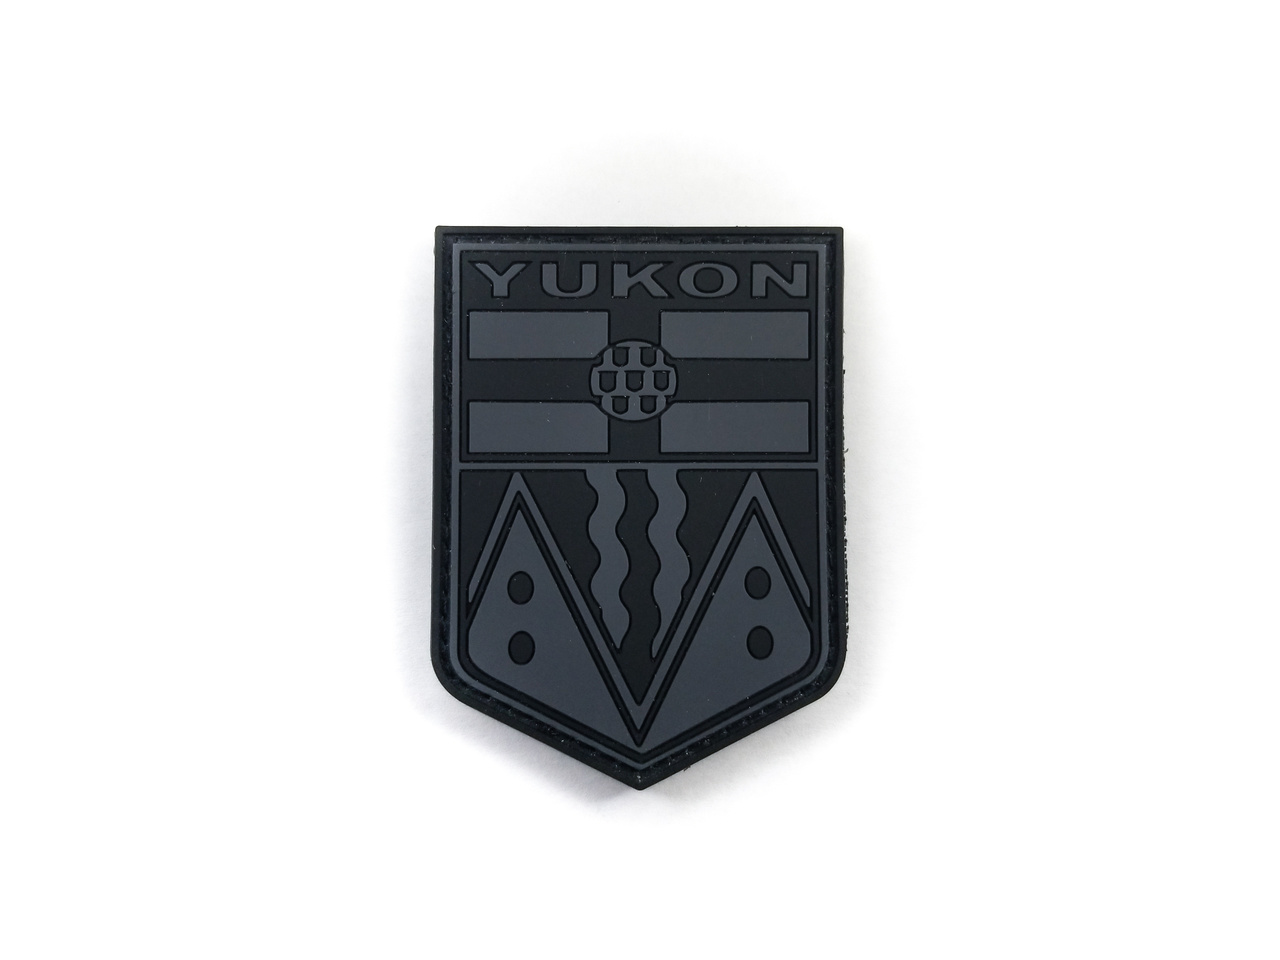 Tactical Innovations Canada PVC Morale Patch YUKON - Grey